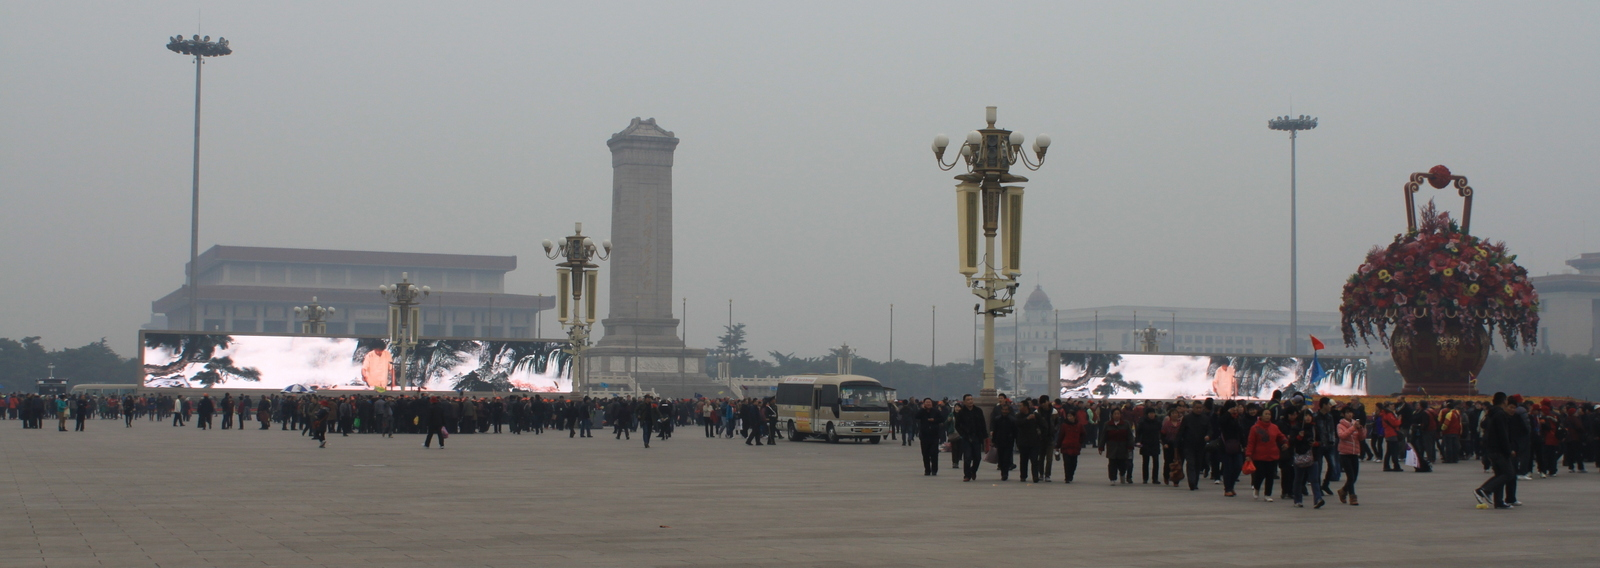 Tian anmen, Square of heavenly Peace, Beijing